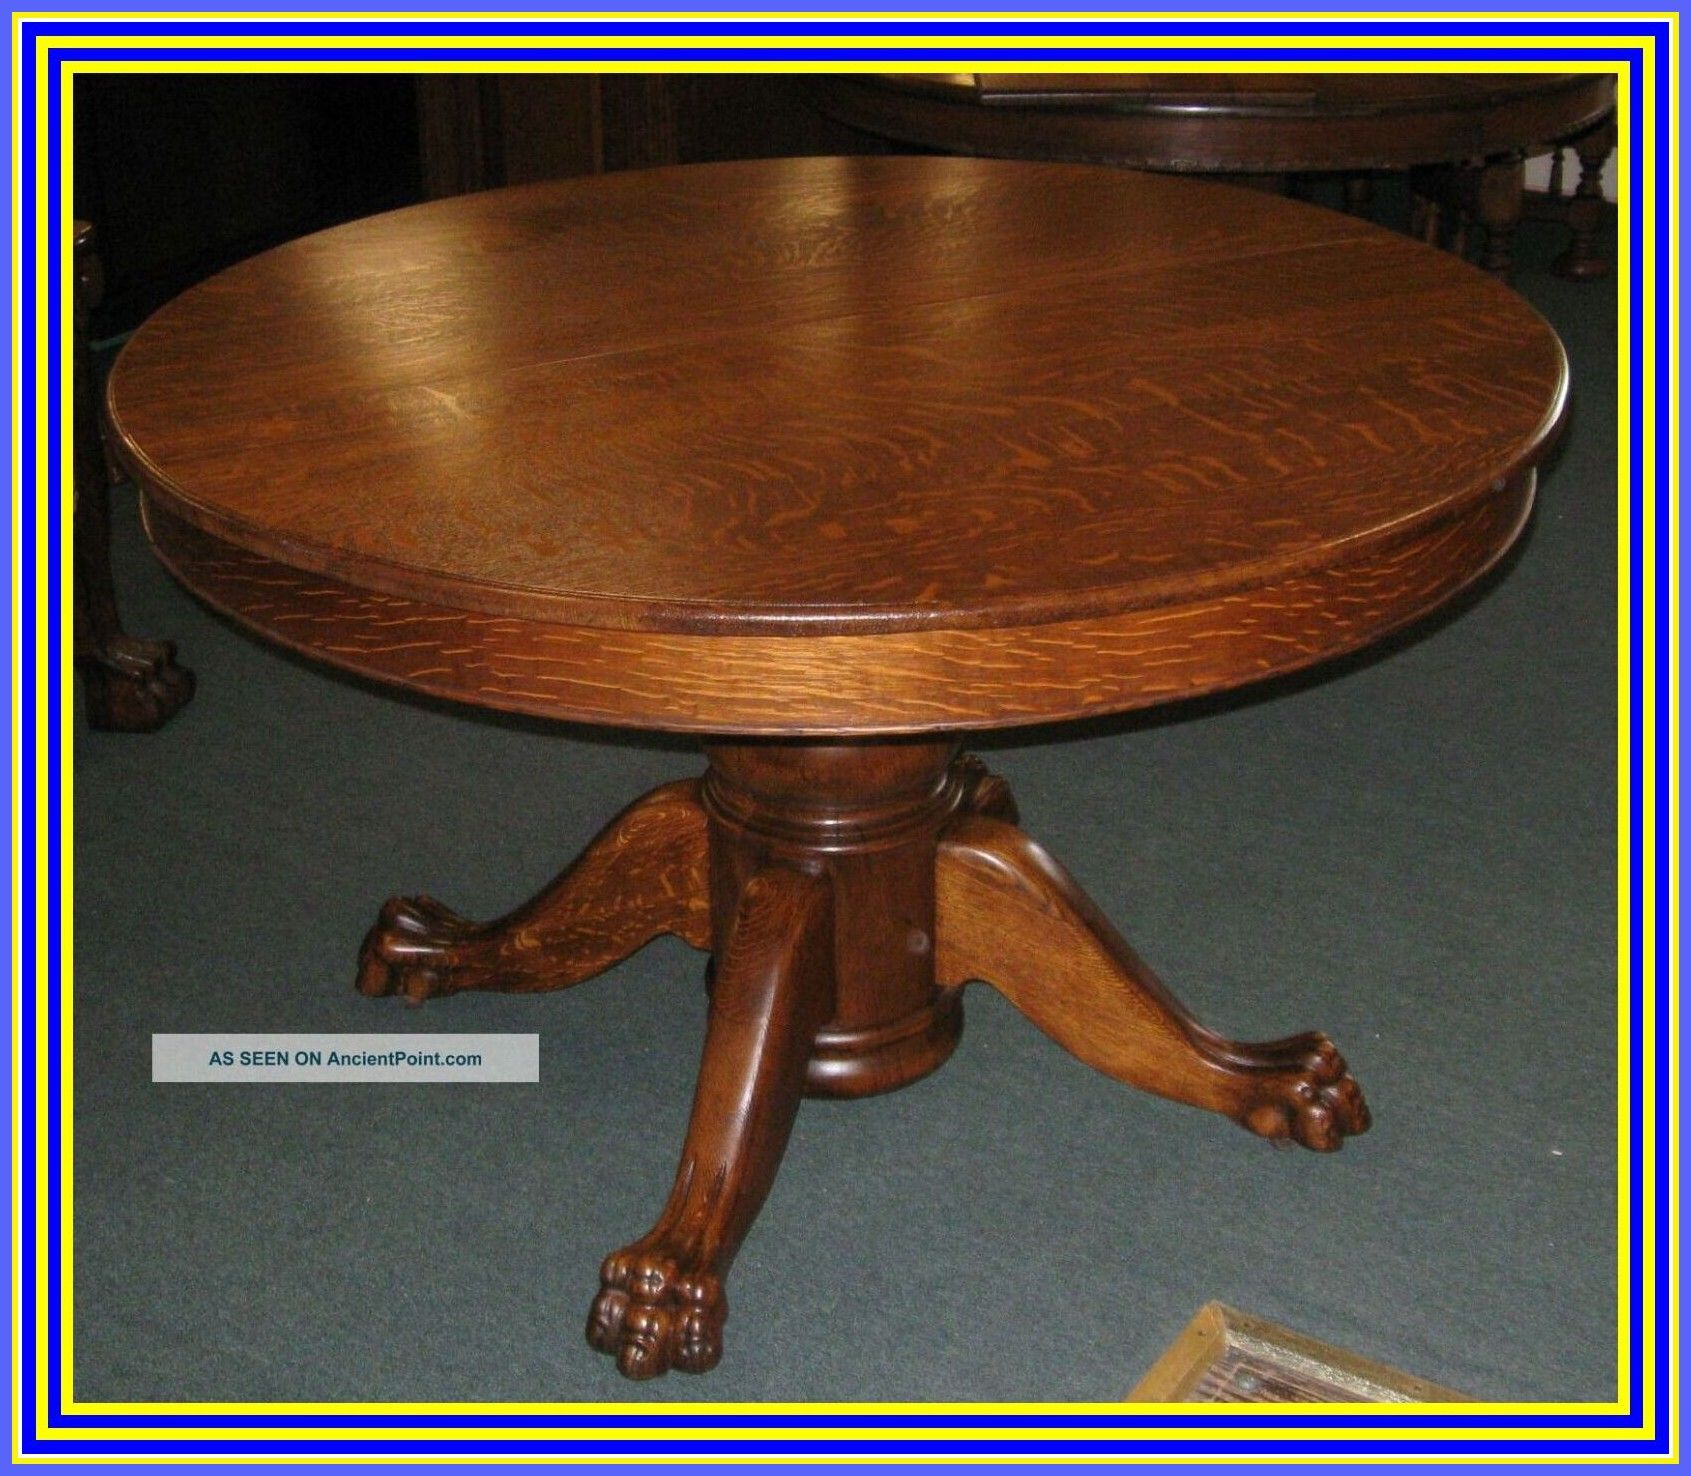 68 Reference Of Antique Oak Dining Table And Chairs In 2020 Oak